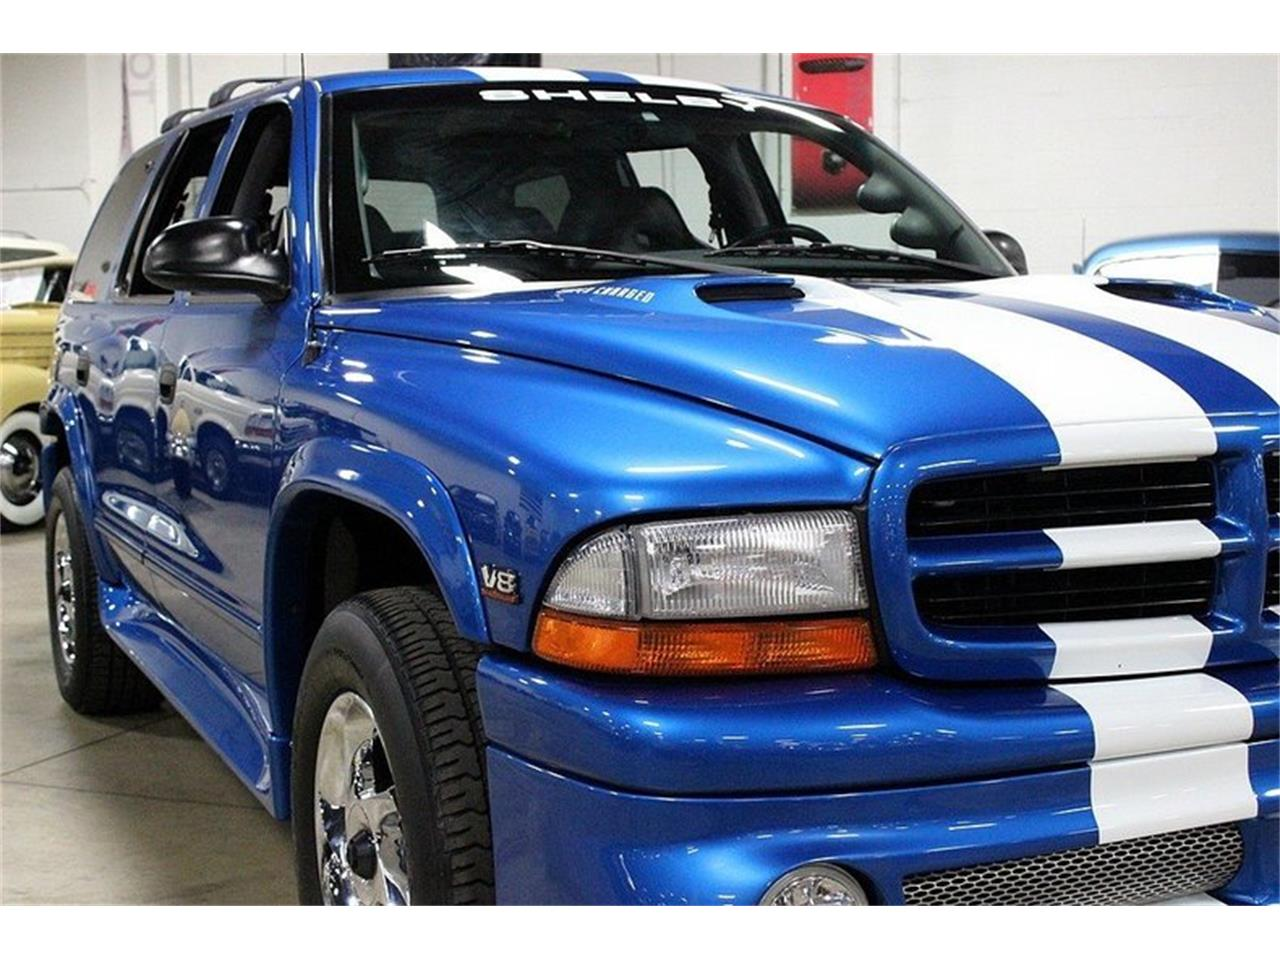 Large Picture of '99 Durango Shelby SP-360 located in Kentwood Michigan - $31,900.00 - MB1Y